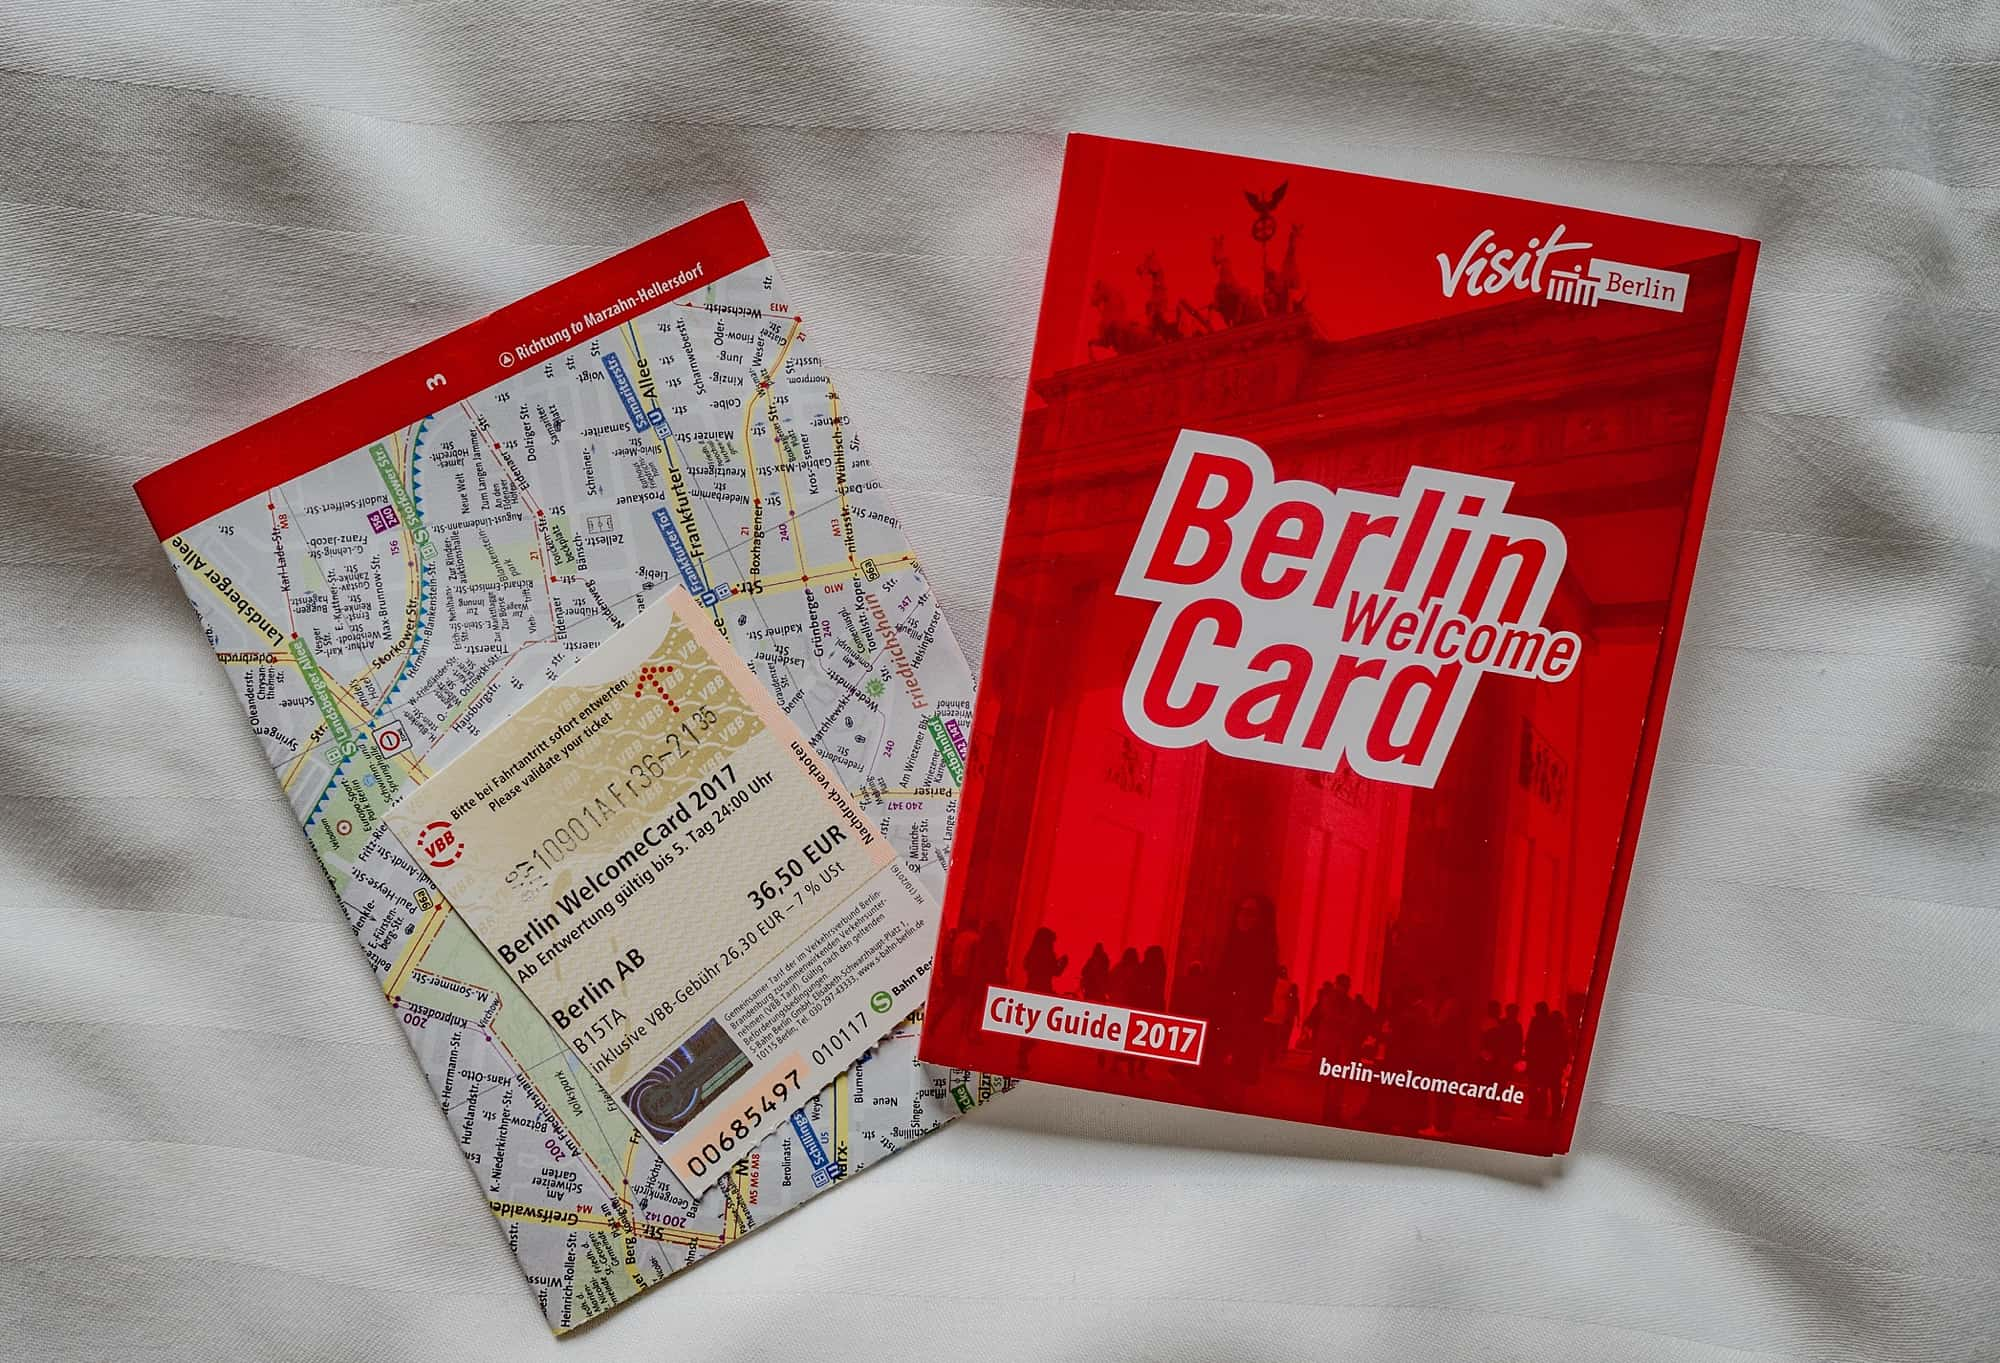 berlin welcomecard with map